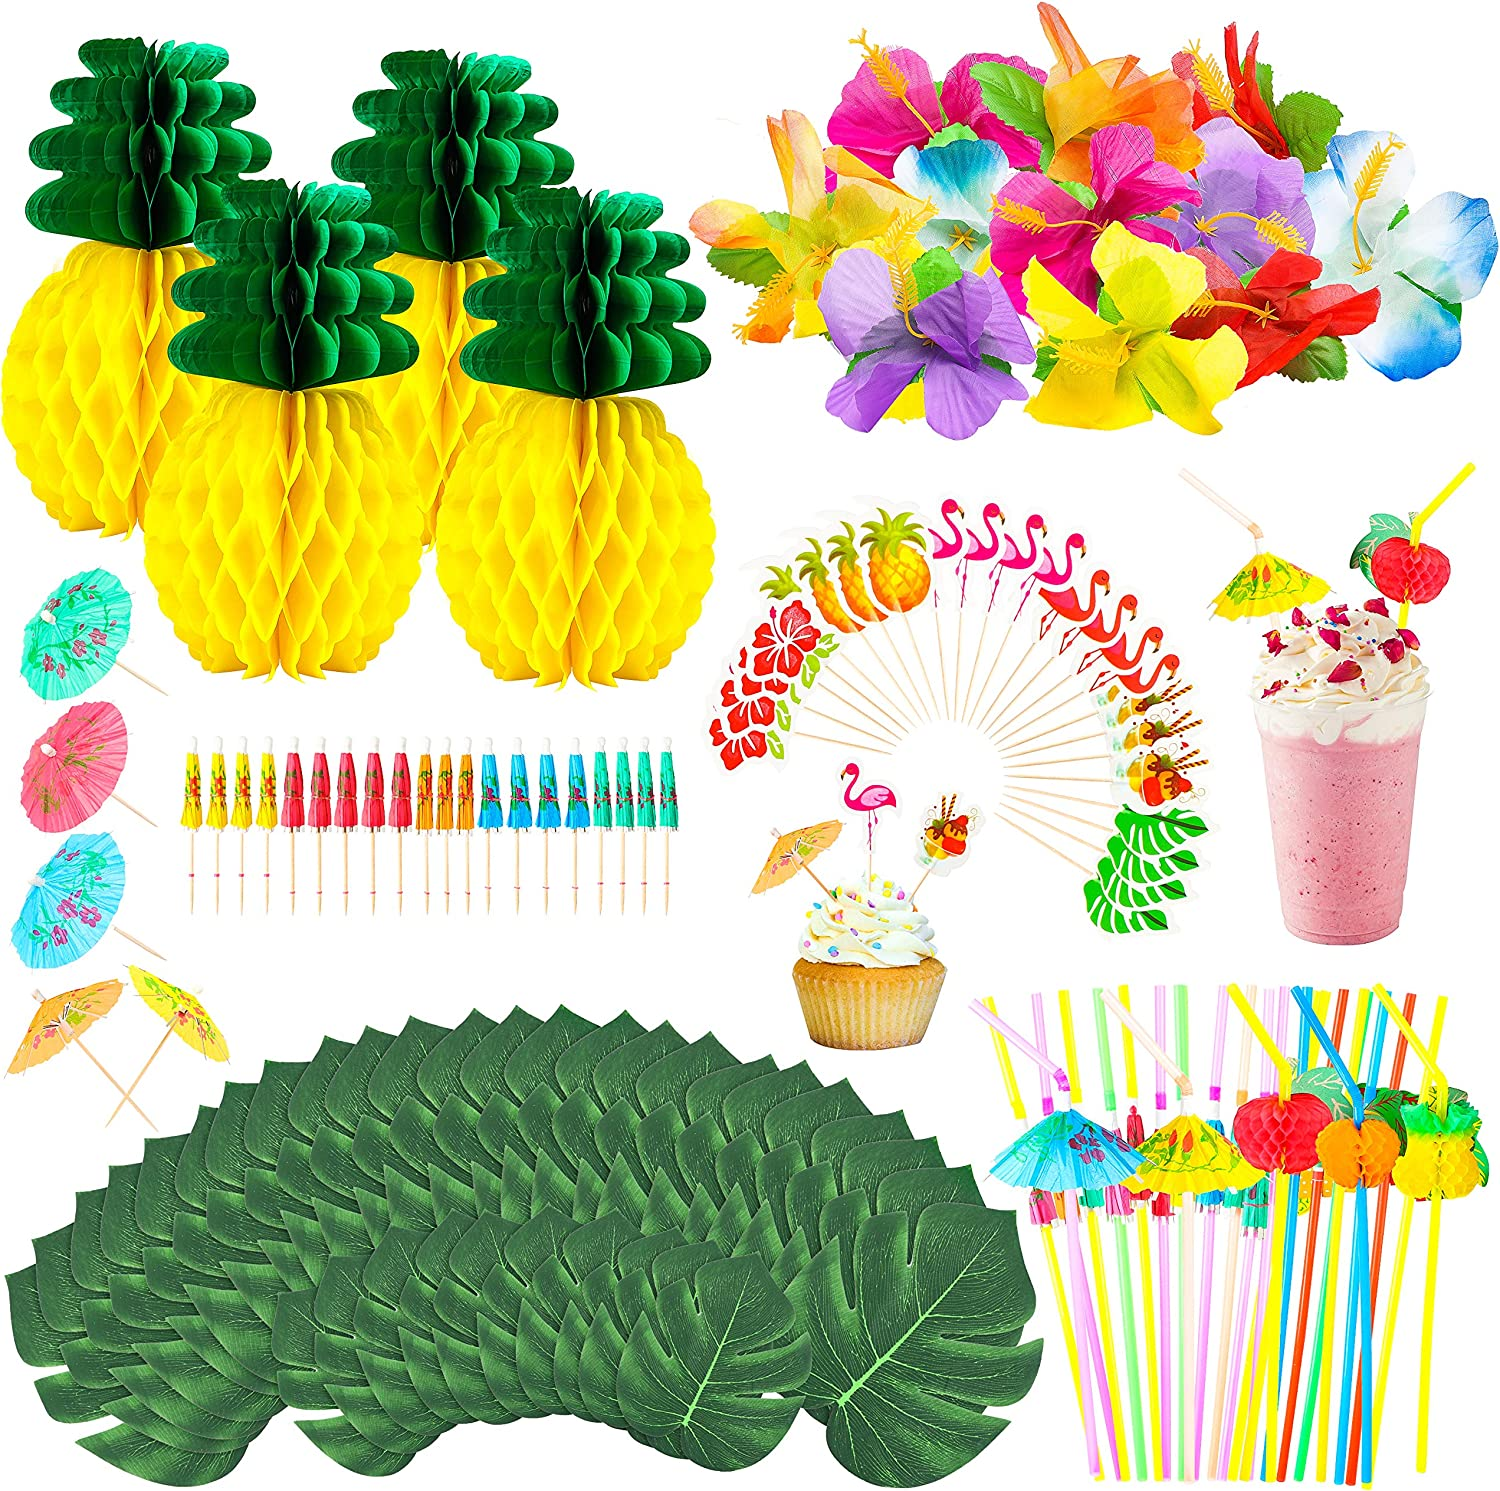 135 Pcs Tropical Hawaiian Jungle Party Decoration Set Luau Party Supplies Decor Tropical Palm Leaves Silk Hibiscus Flowers Tissue Paper Pineapples Cupcake Topers Paper Cocktail Umbrellas Straws